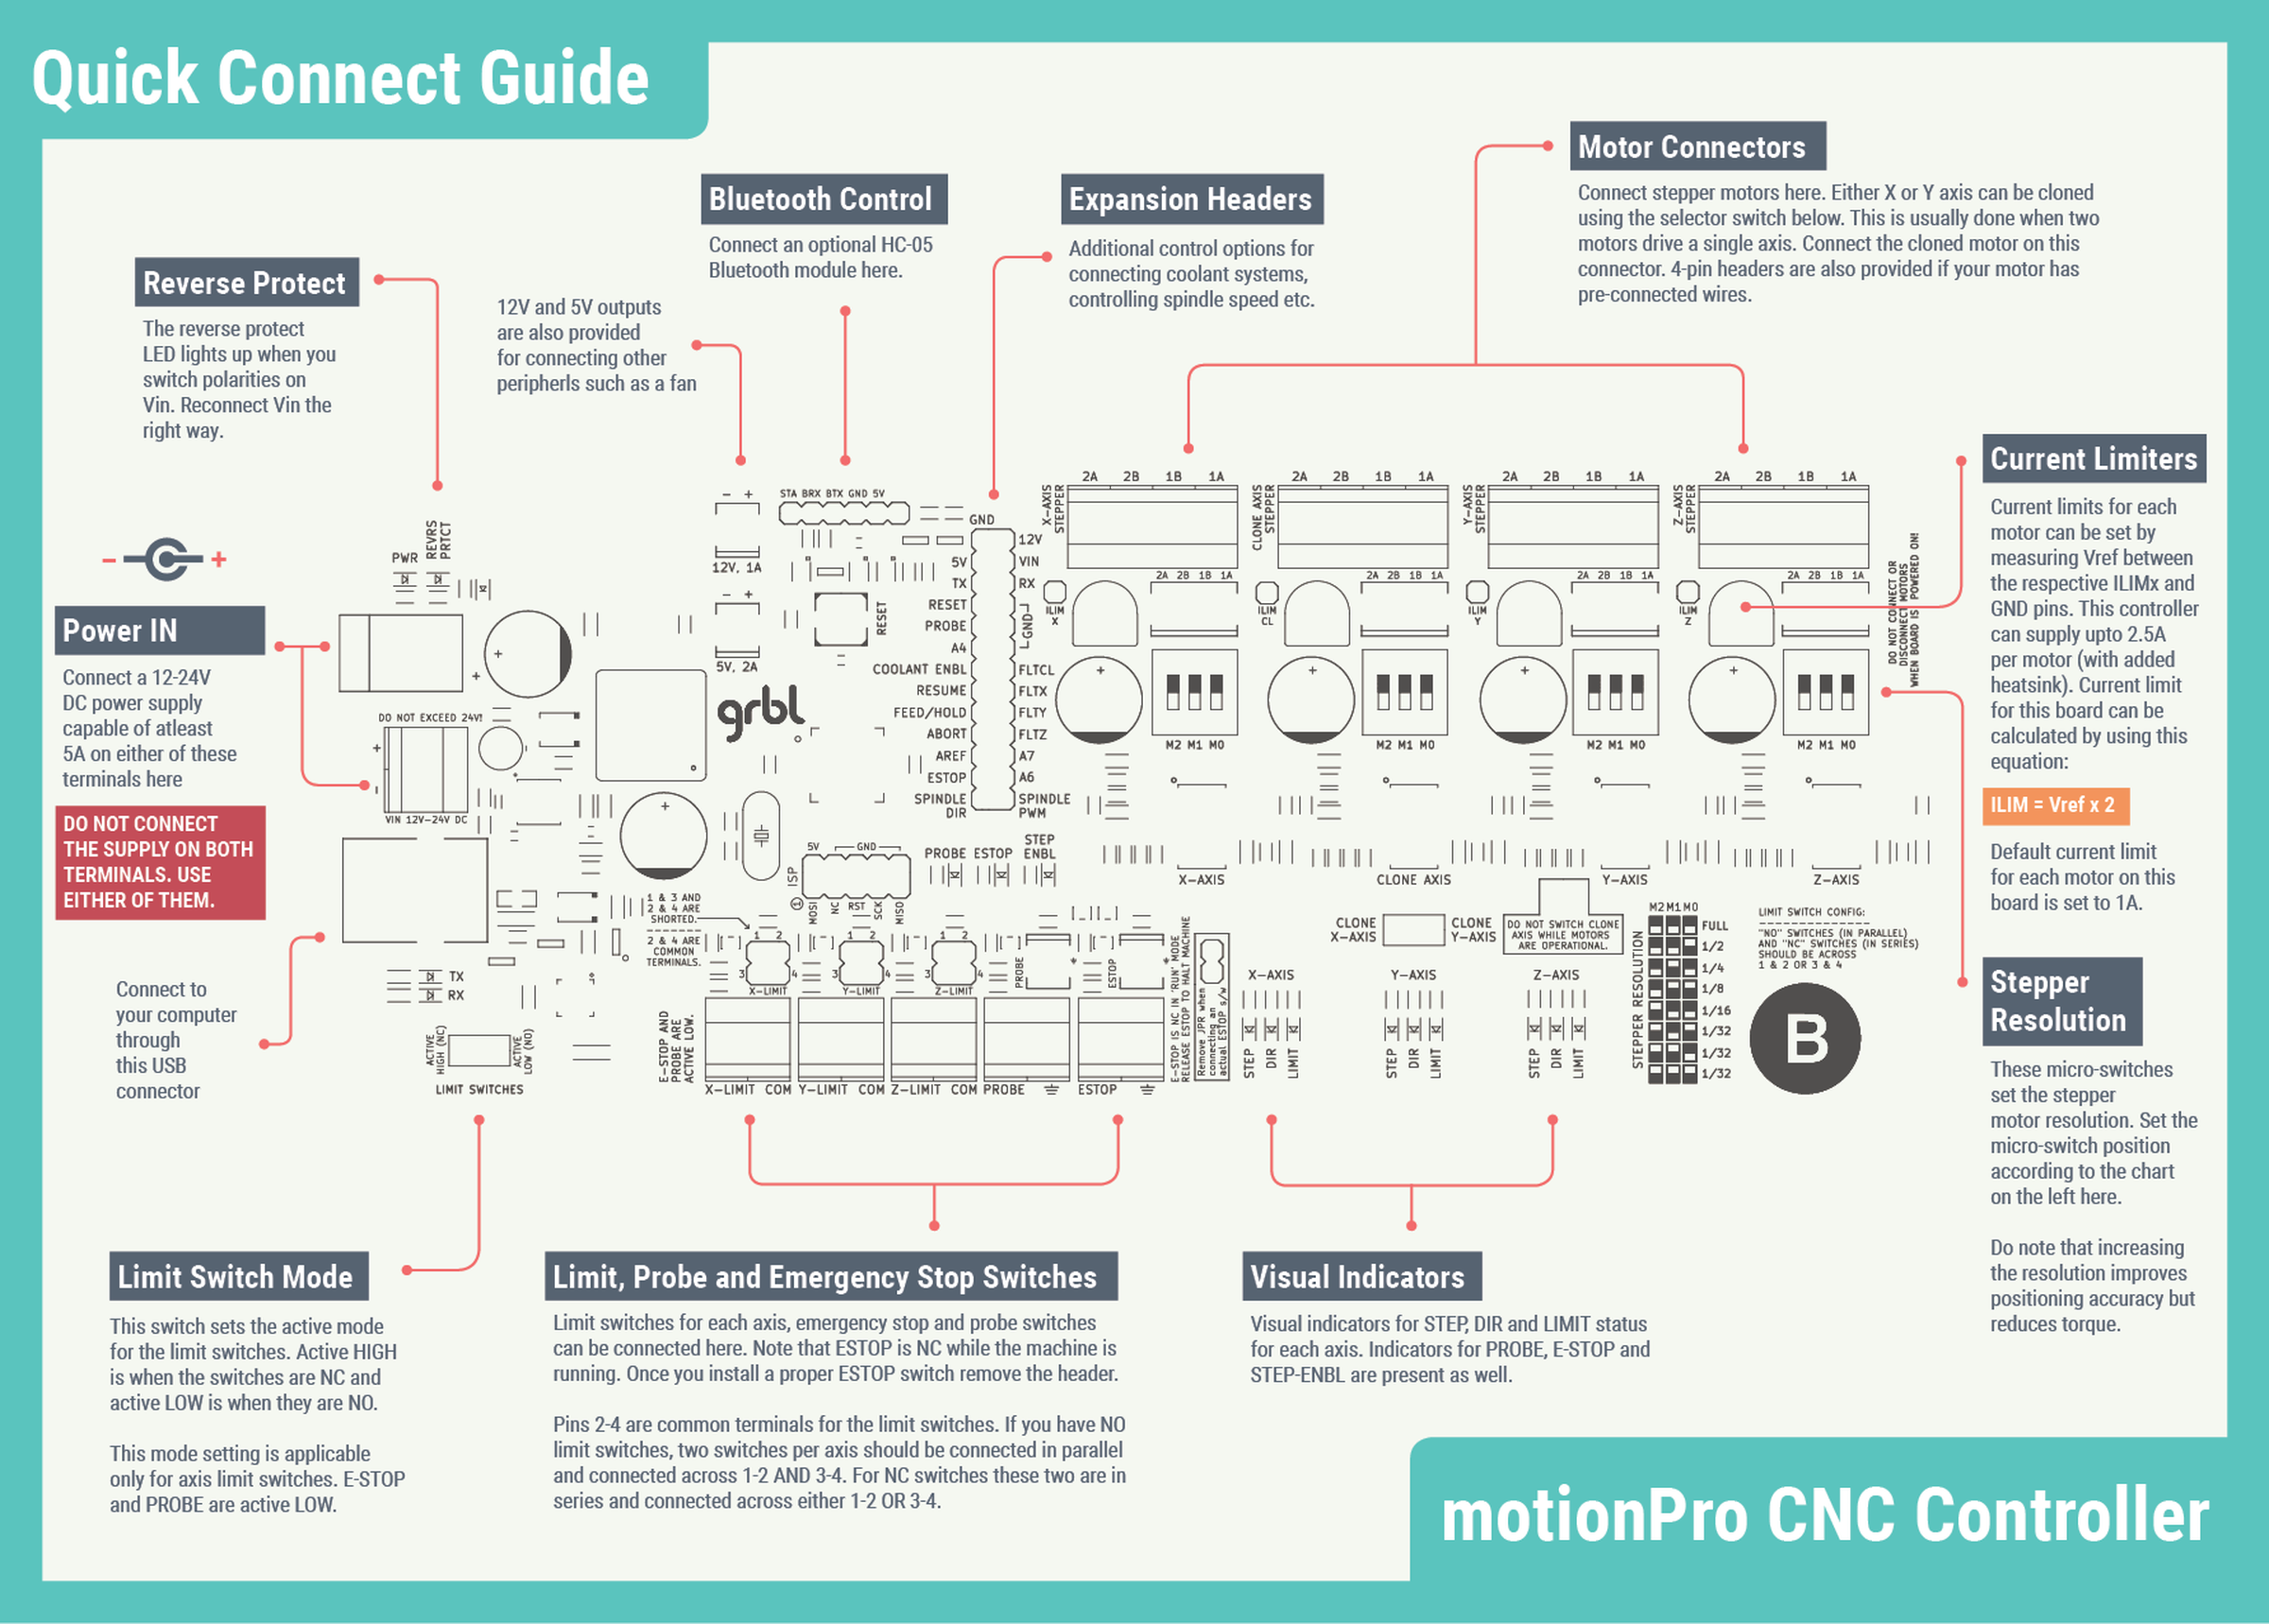 Motionpro 3 1 Axis Cnc Controller From Class B Project On Tindie Wiring Diagram 2